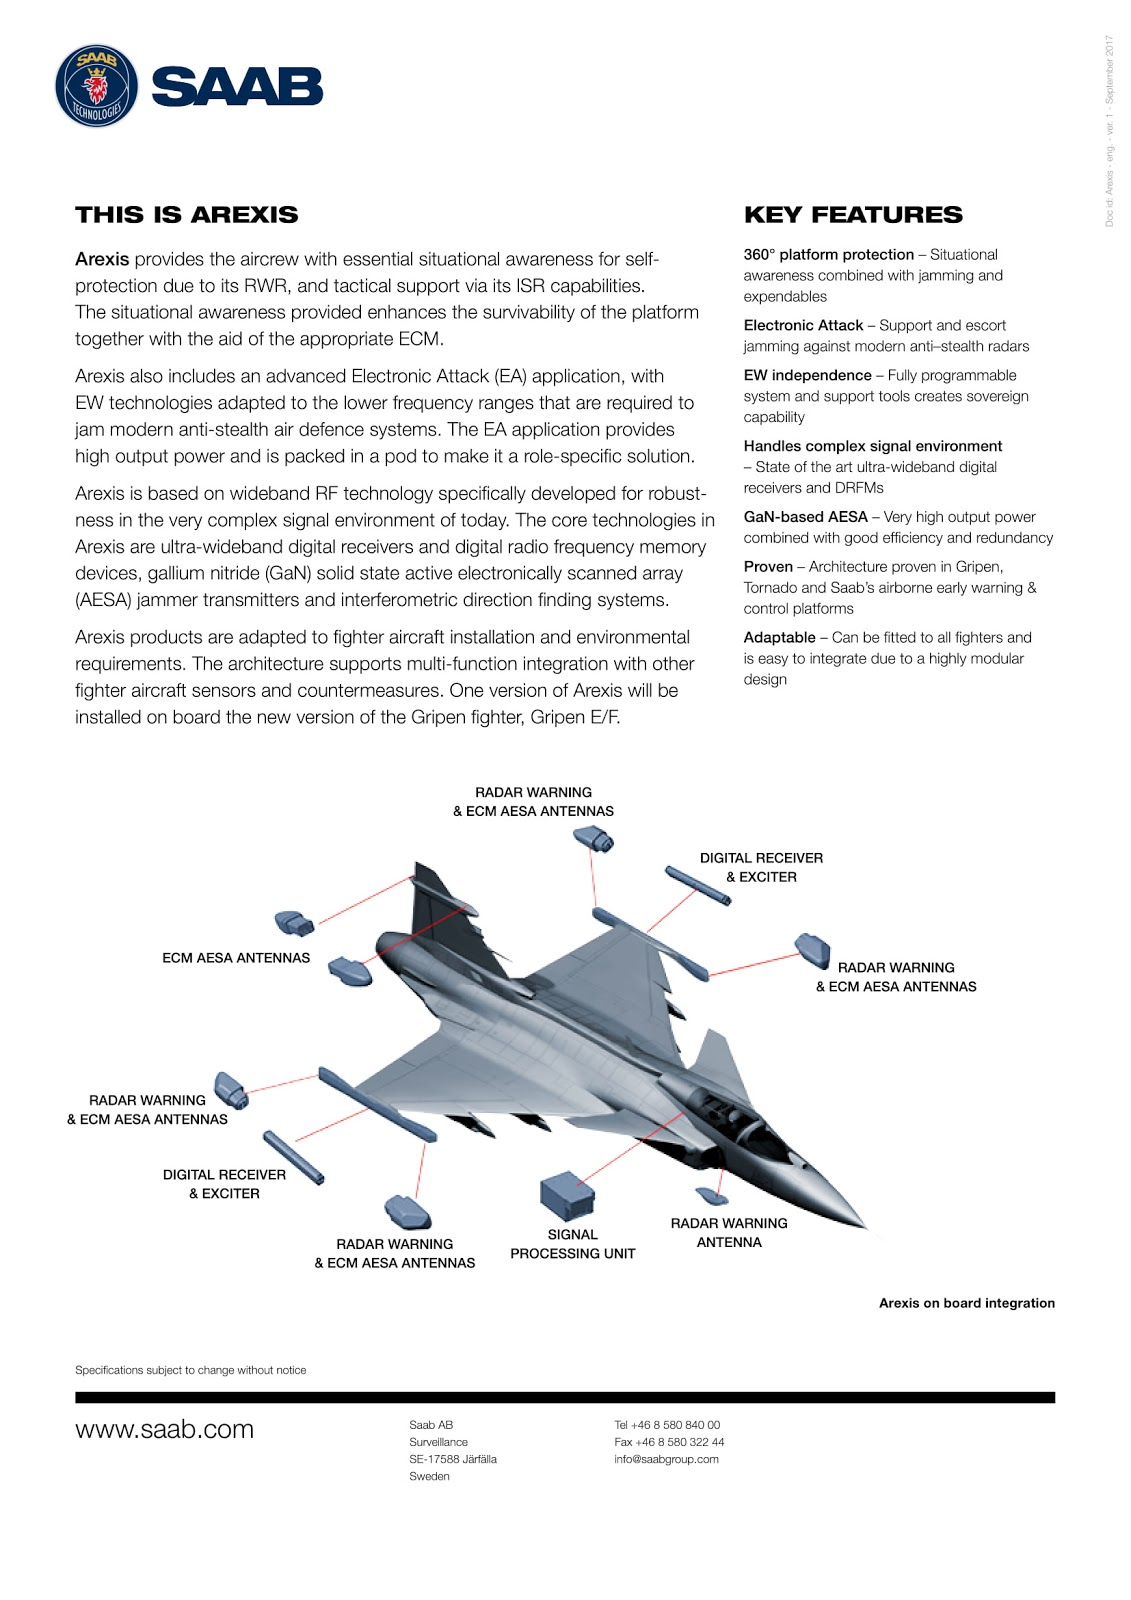 SNAFU!: SAAB Arexis escort jammer pod   a pocket E/A-18 for every